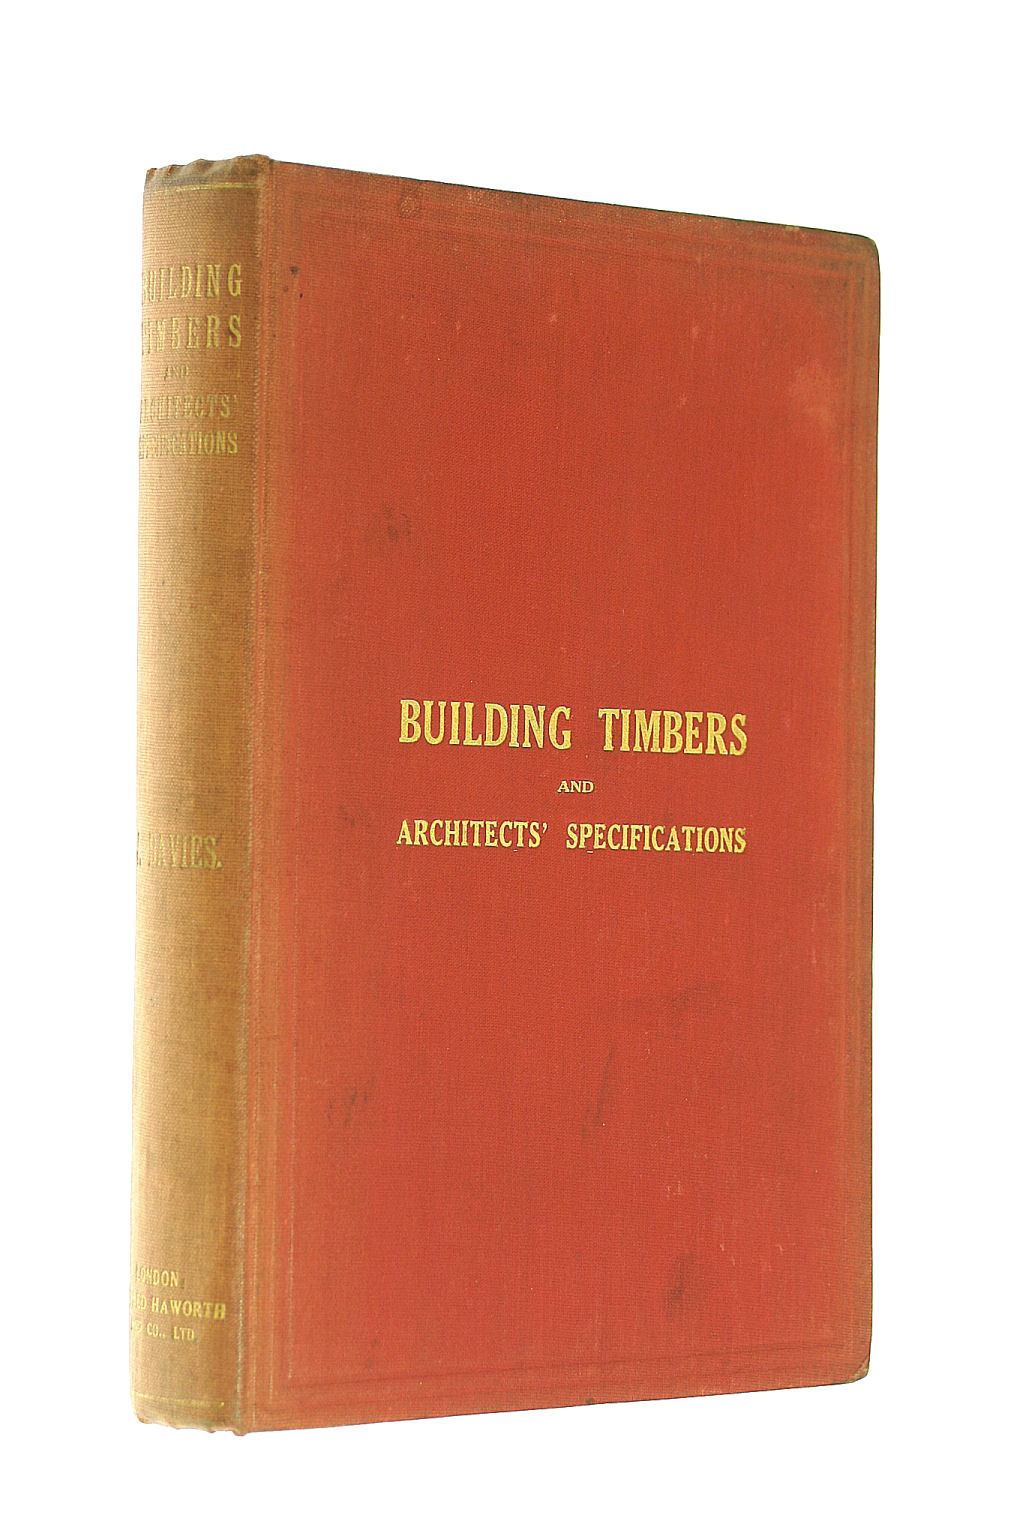 Image for Building Timbers and Architects' Specifications. Incorporated With Which is Part of Haworth's Practical Timber Measurer.